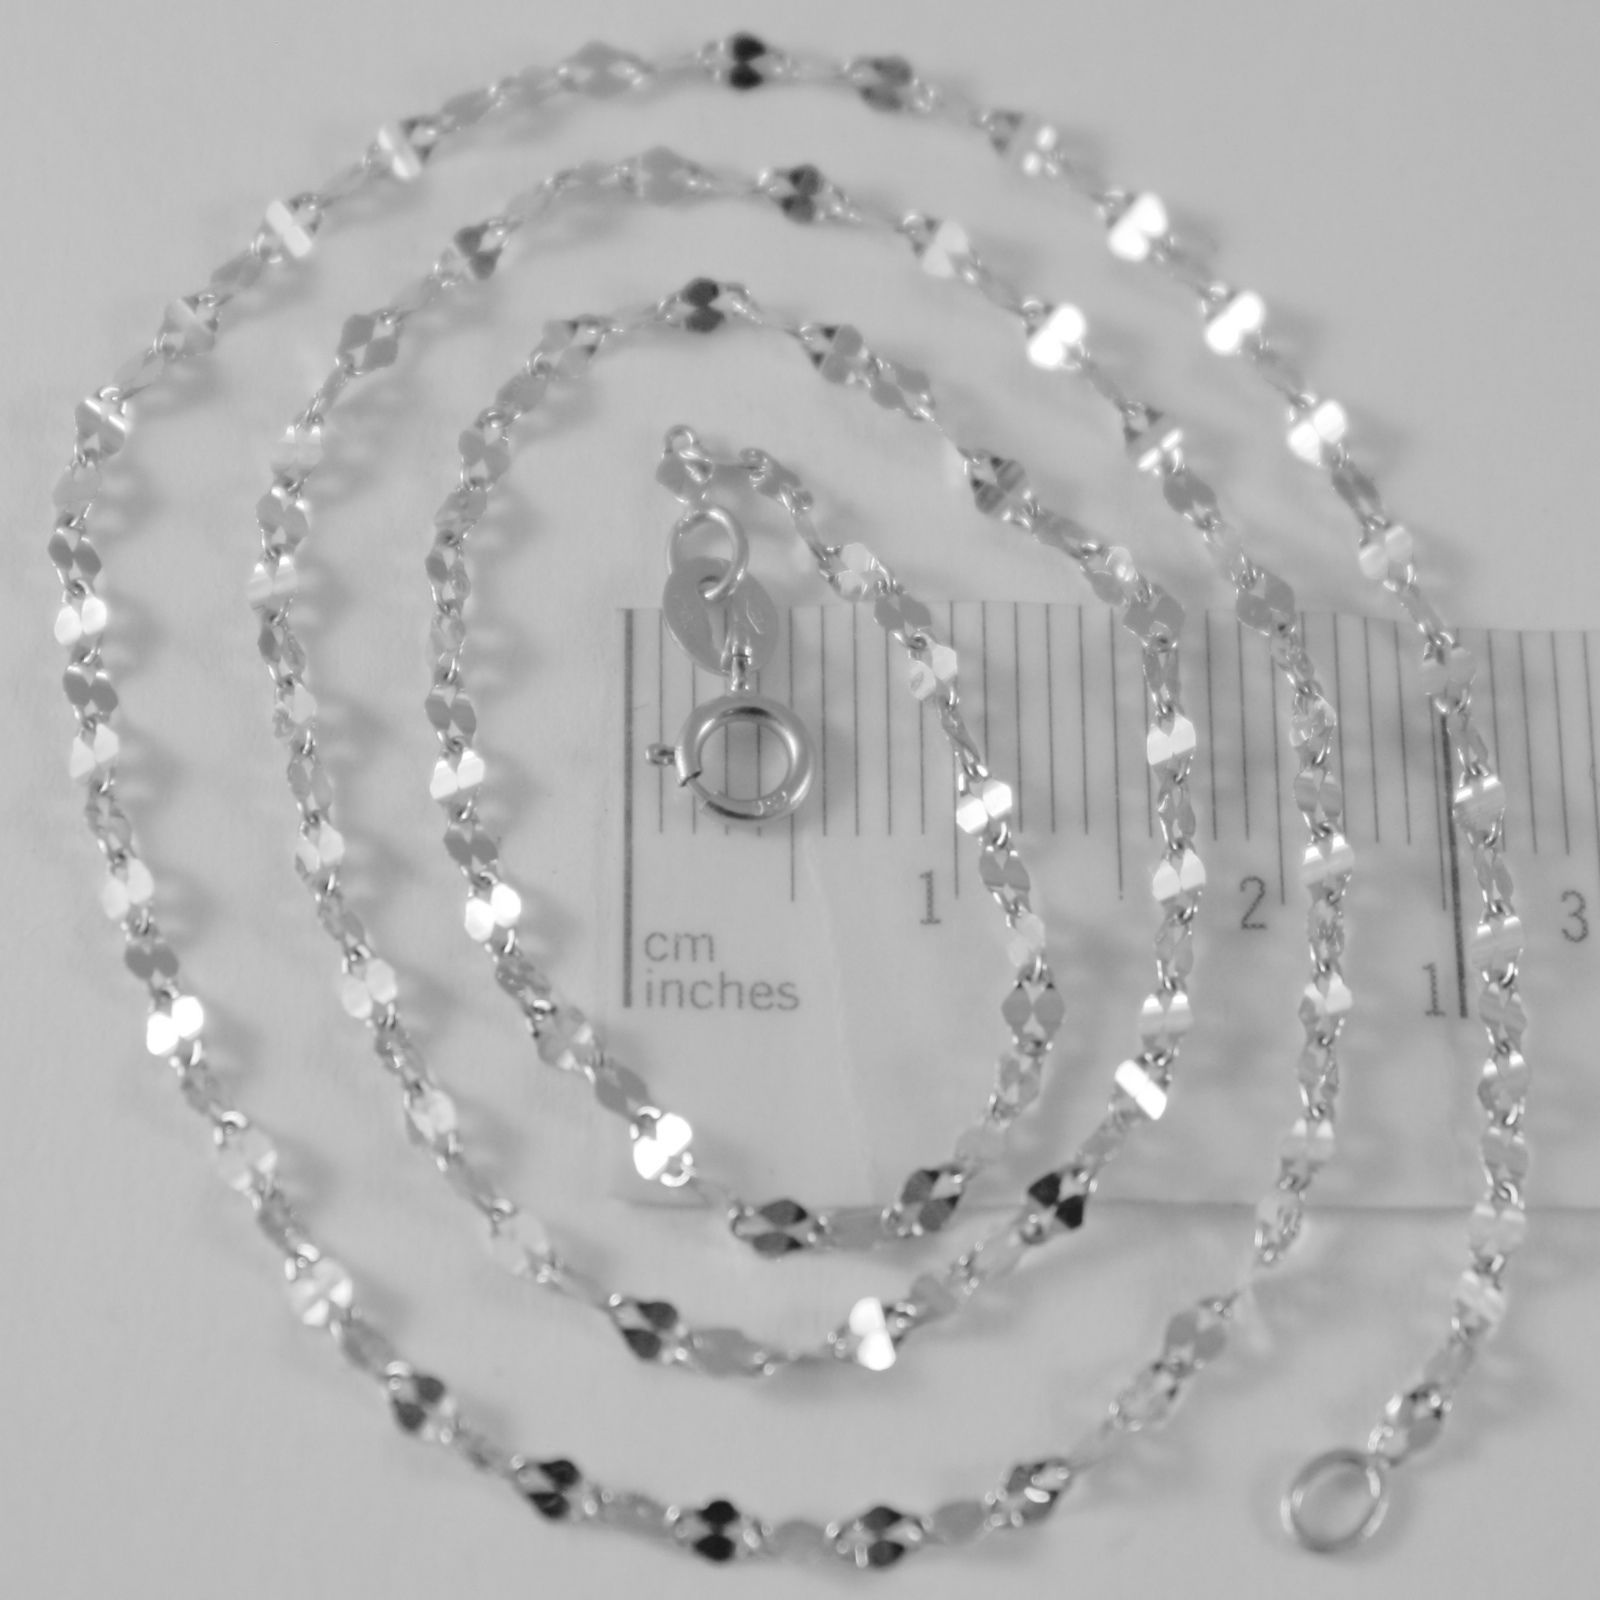 SOLID 18K WHITE GOLD FLAT BRIGHT KITE CHAIN 16 INCHES, 2.2 MM MADE IN ITALY